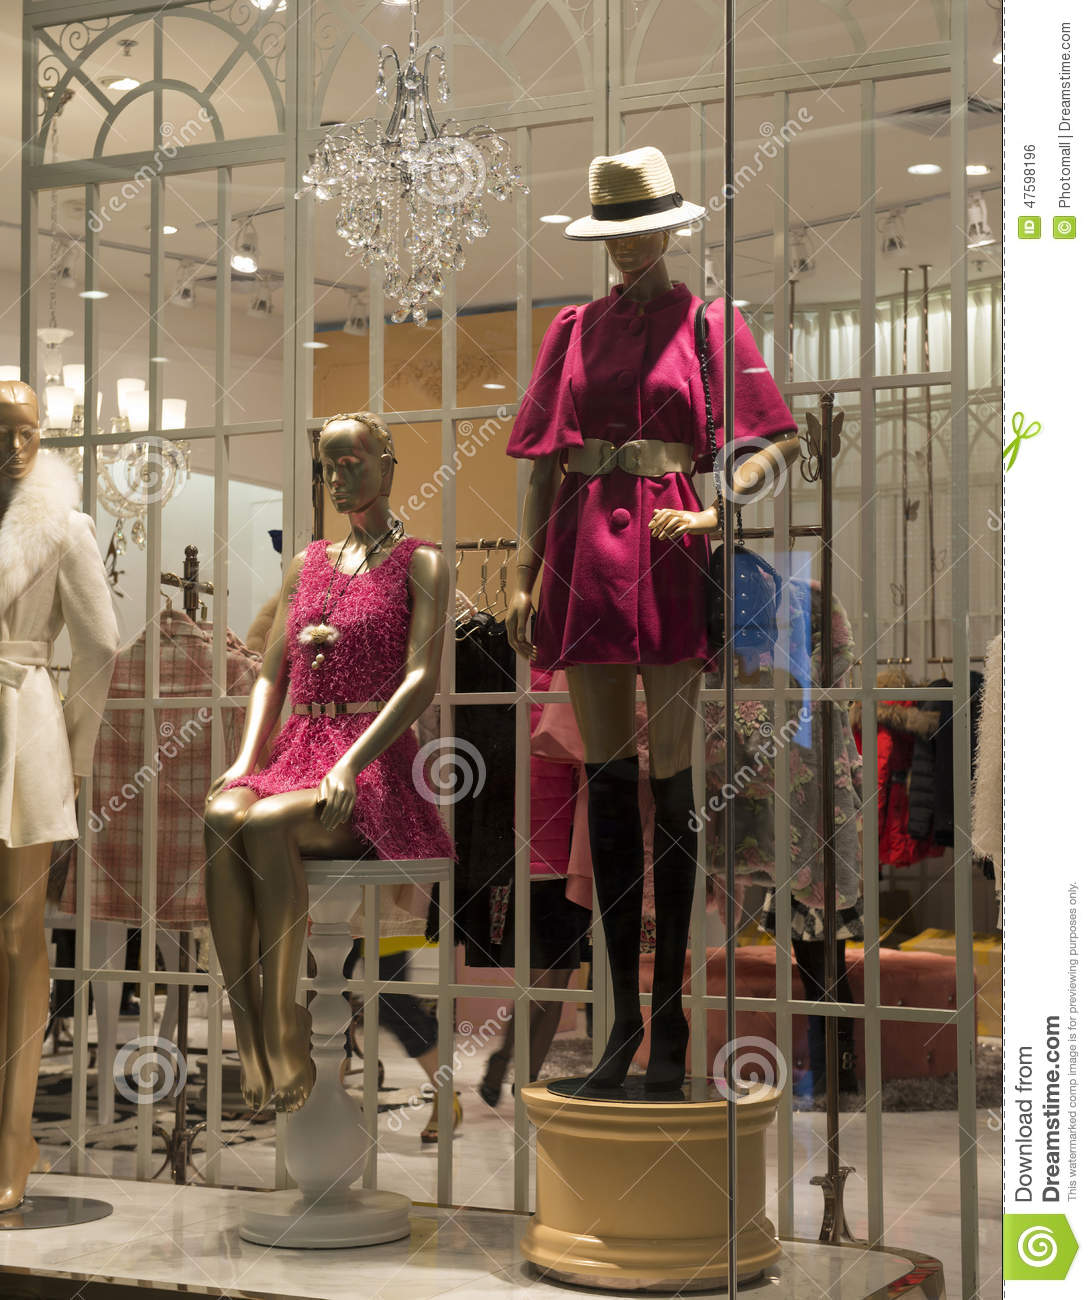 Clothing store mannequins